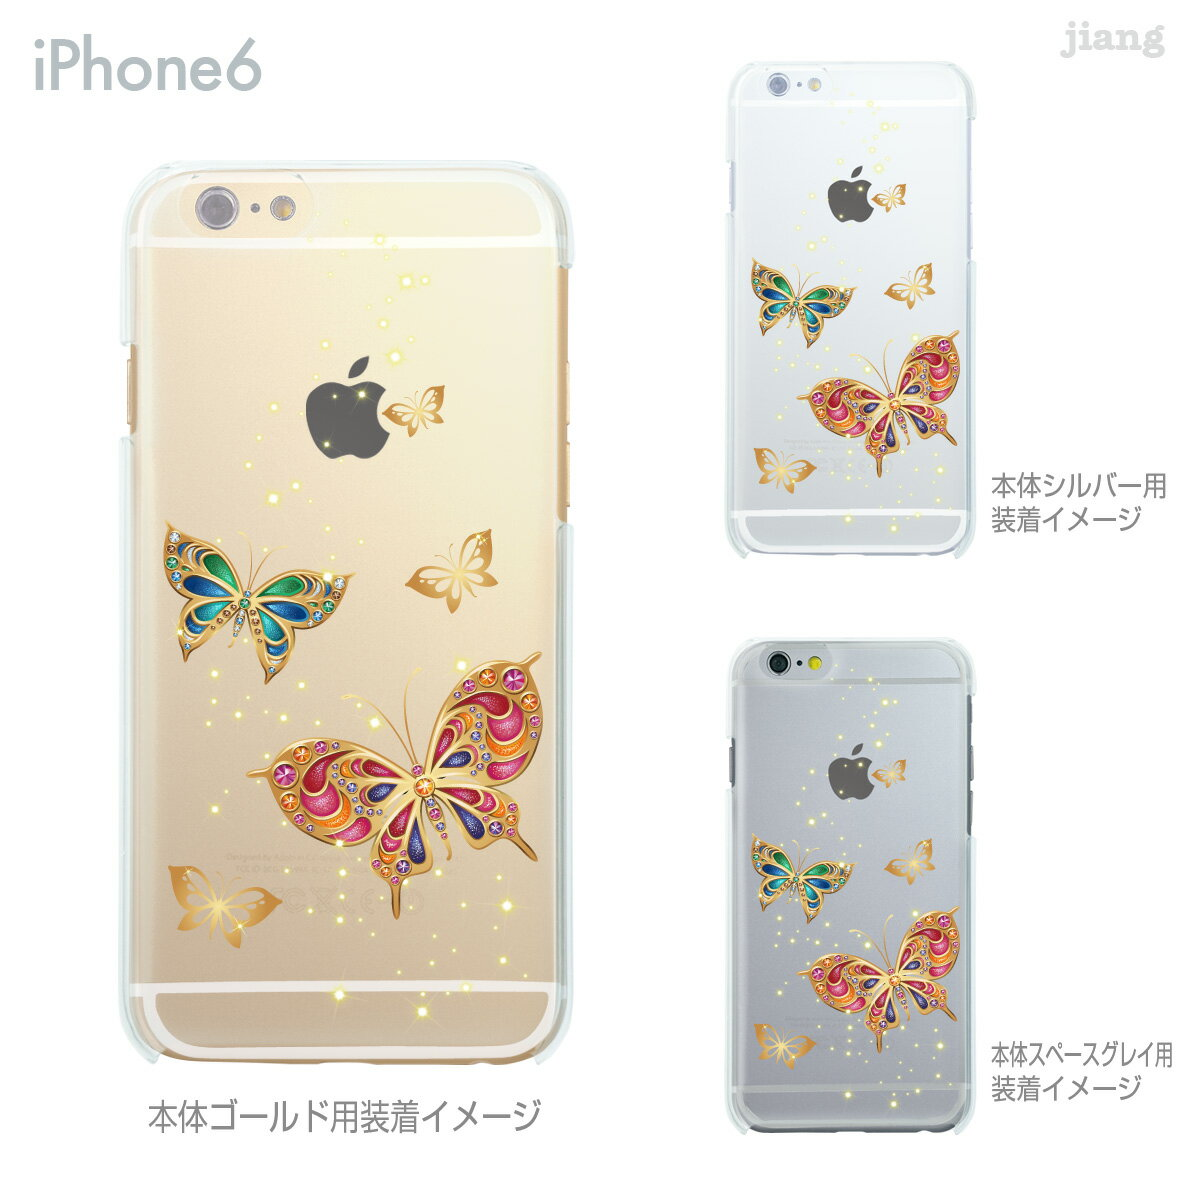 iphoneXSケース iPhoneXS Max iPhoneXR iPhoneX iPhone8 Plus ケース iPhone iphone7ケース iphone7 iphone7s Plus iPhone6s iPhone6 Plus iphoneSE ケース iPhone5s スマホケース ハードケース カバー かわいい 蝶 06-ip6-ca0090